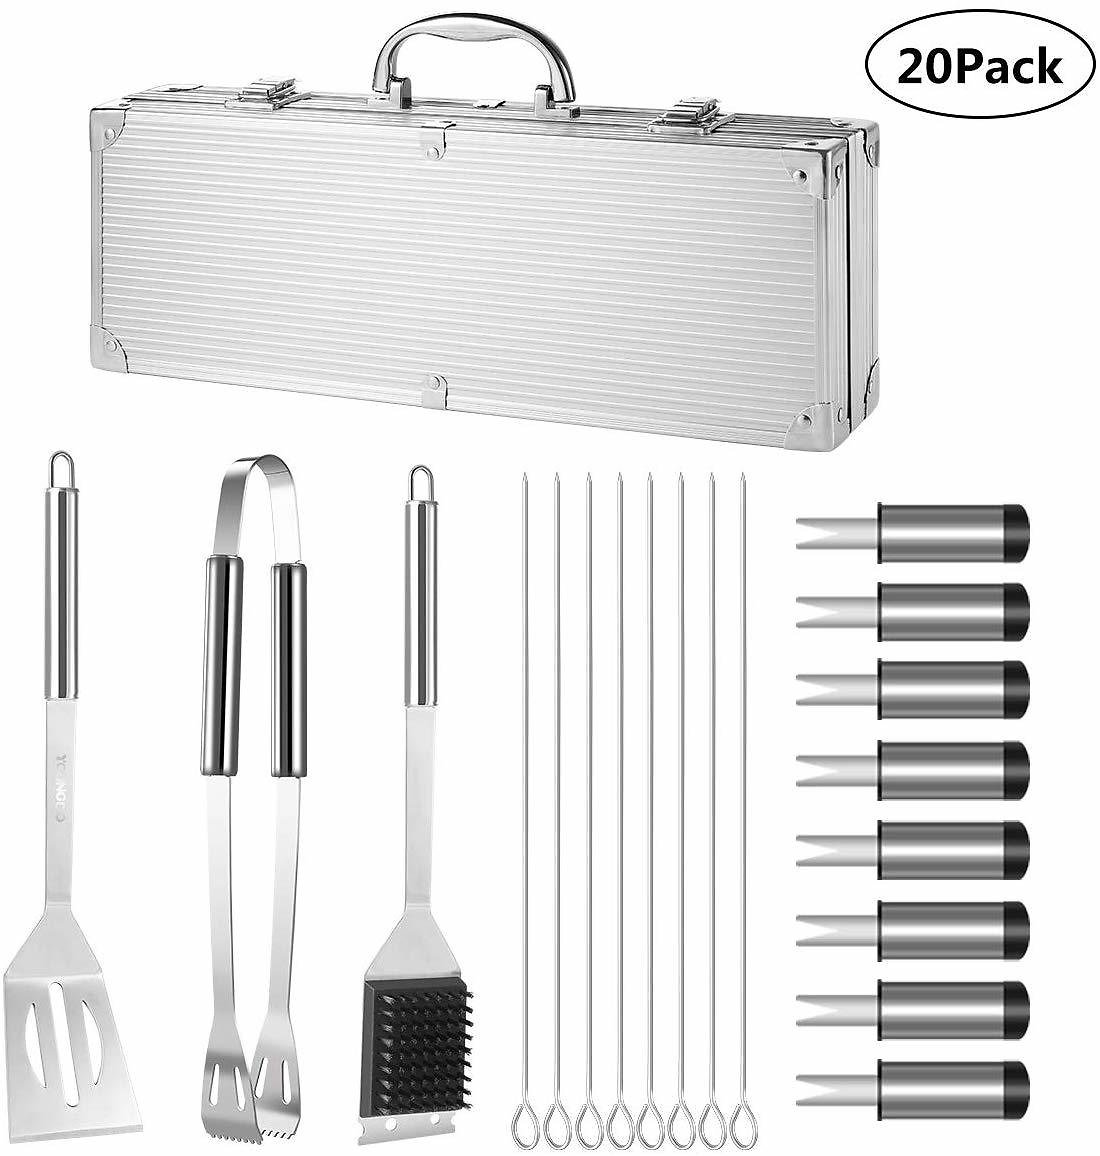 YOUNGDO 20Pcs BBQ Grill Tools Set Barbecue Grilling Accessories Kit with Aluminum Case